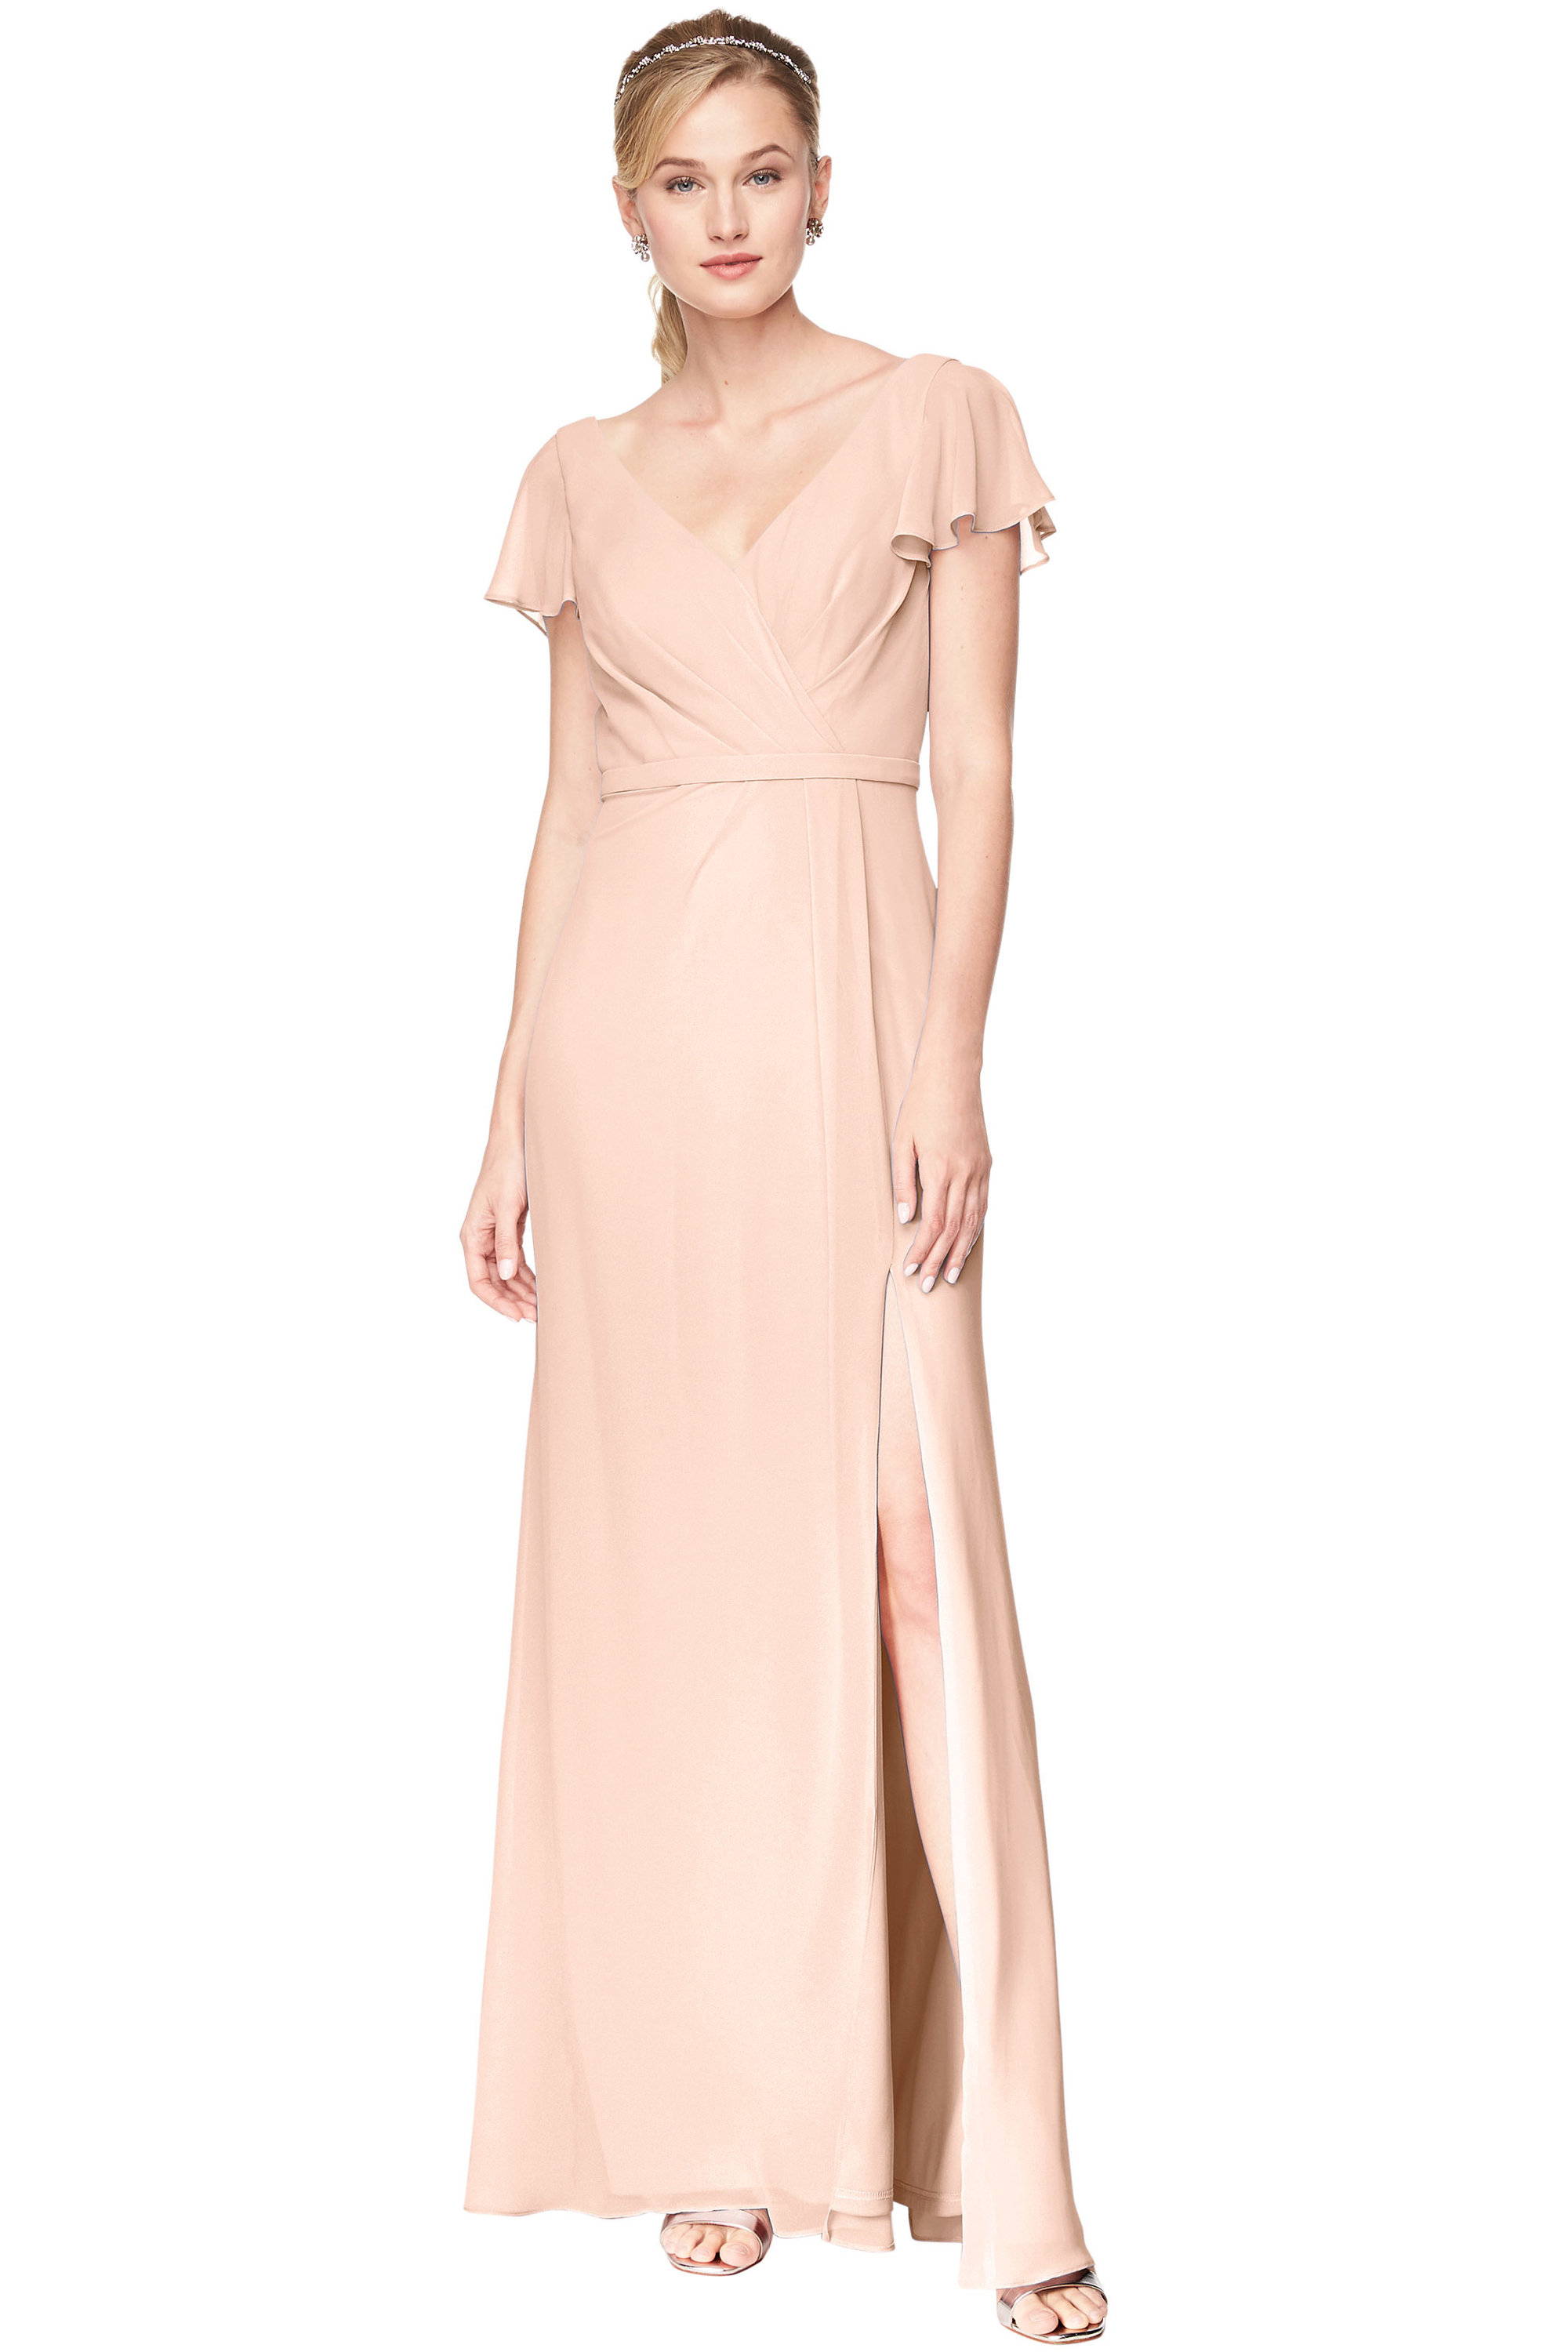 Bill Levkoff SHELL PINK Chiffon V-Neck A-Line gown, $184.00 Front